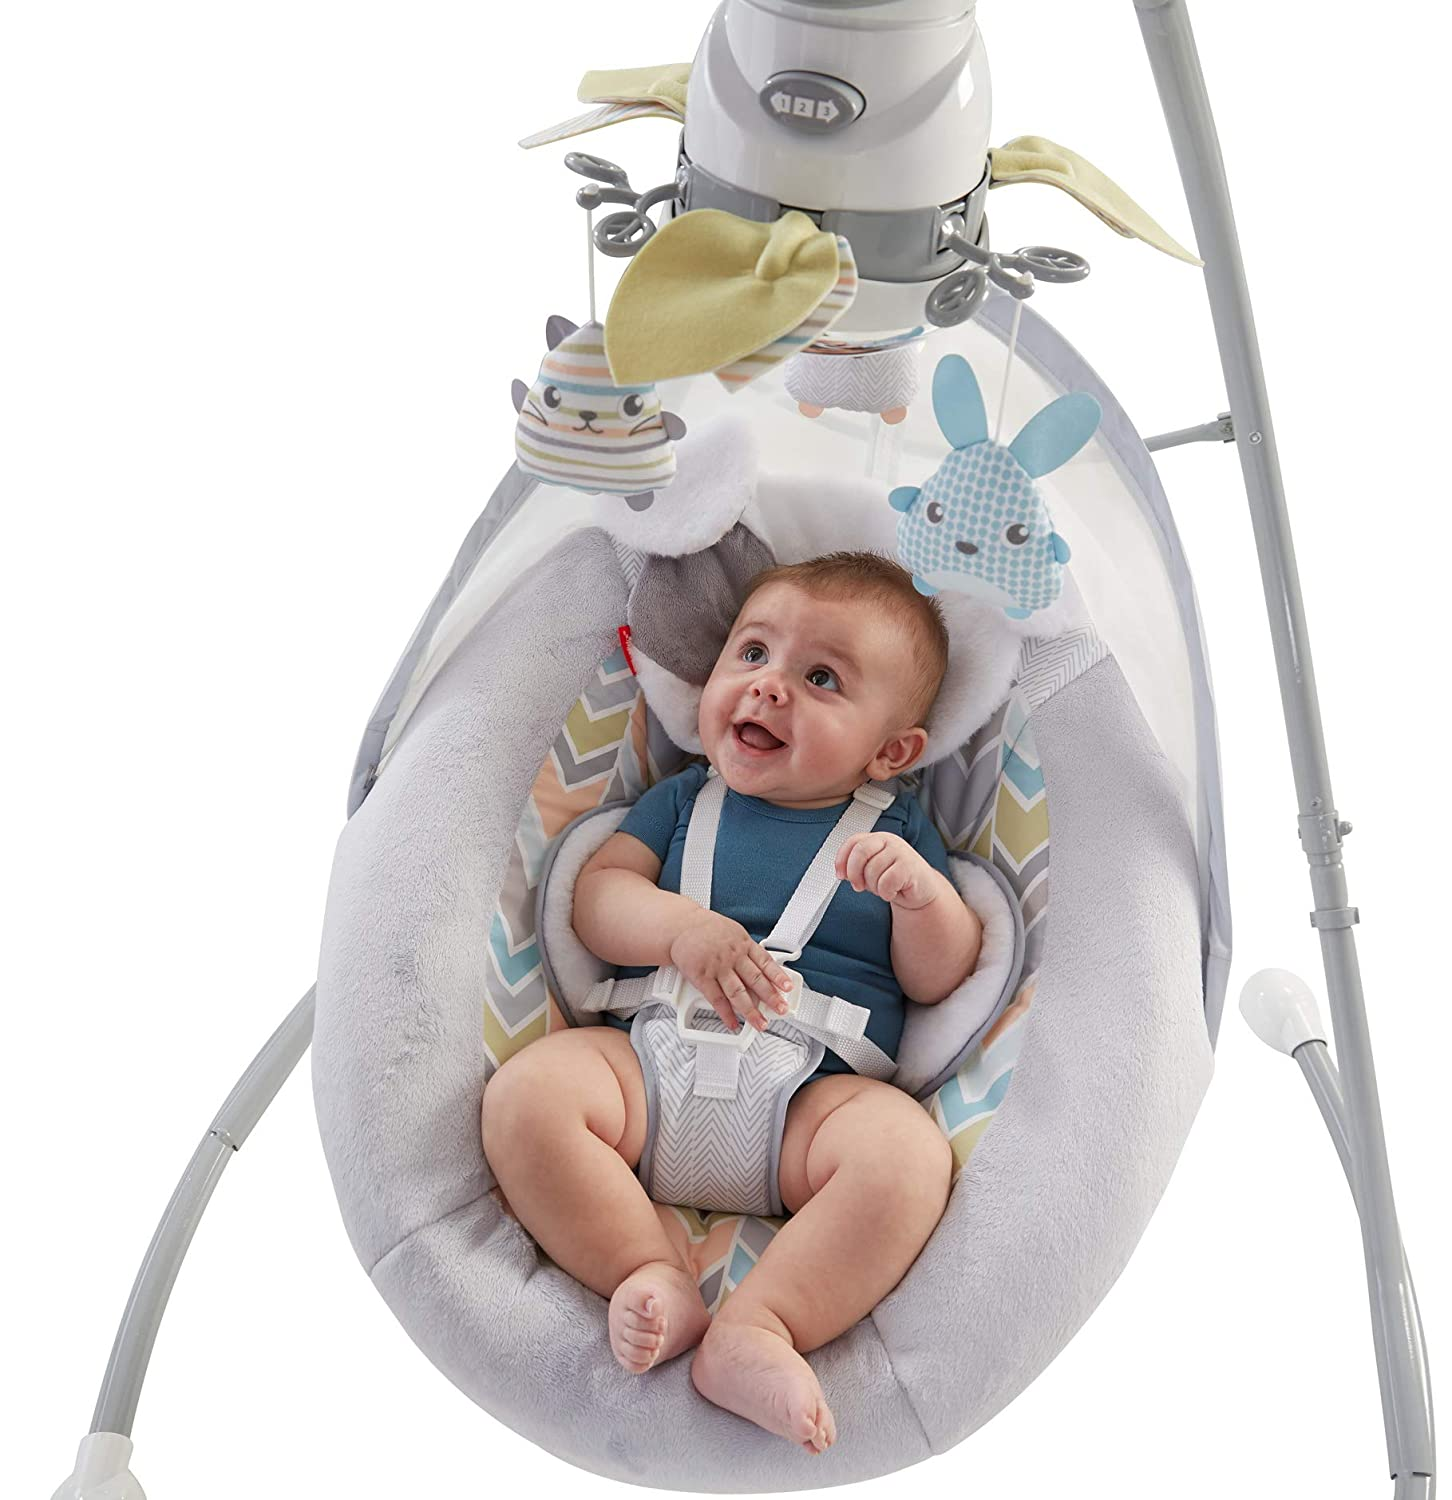 71sotGe39iL. SL1500 The 10 Best Baby Swings 2021 [In-depth Review]